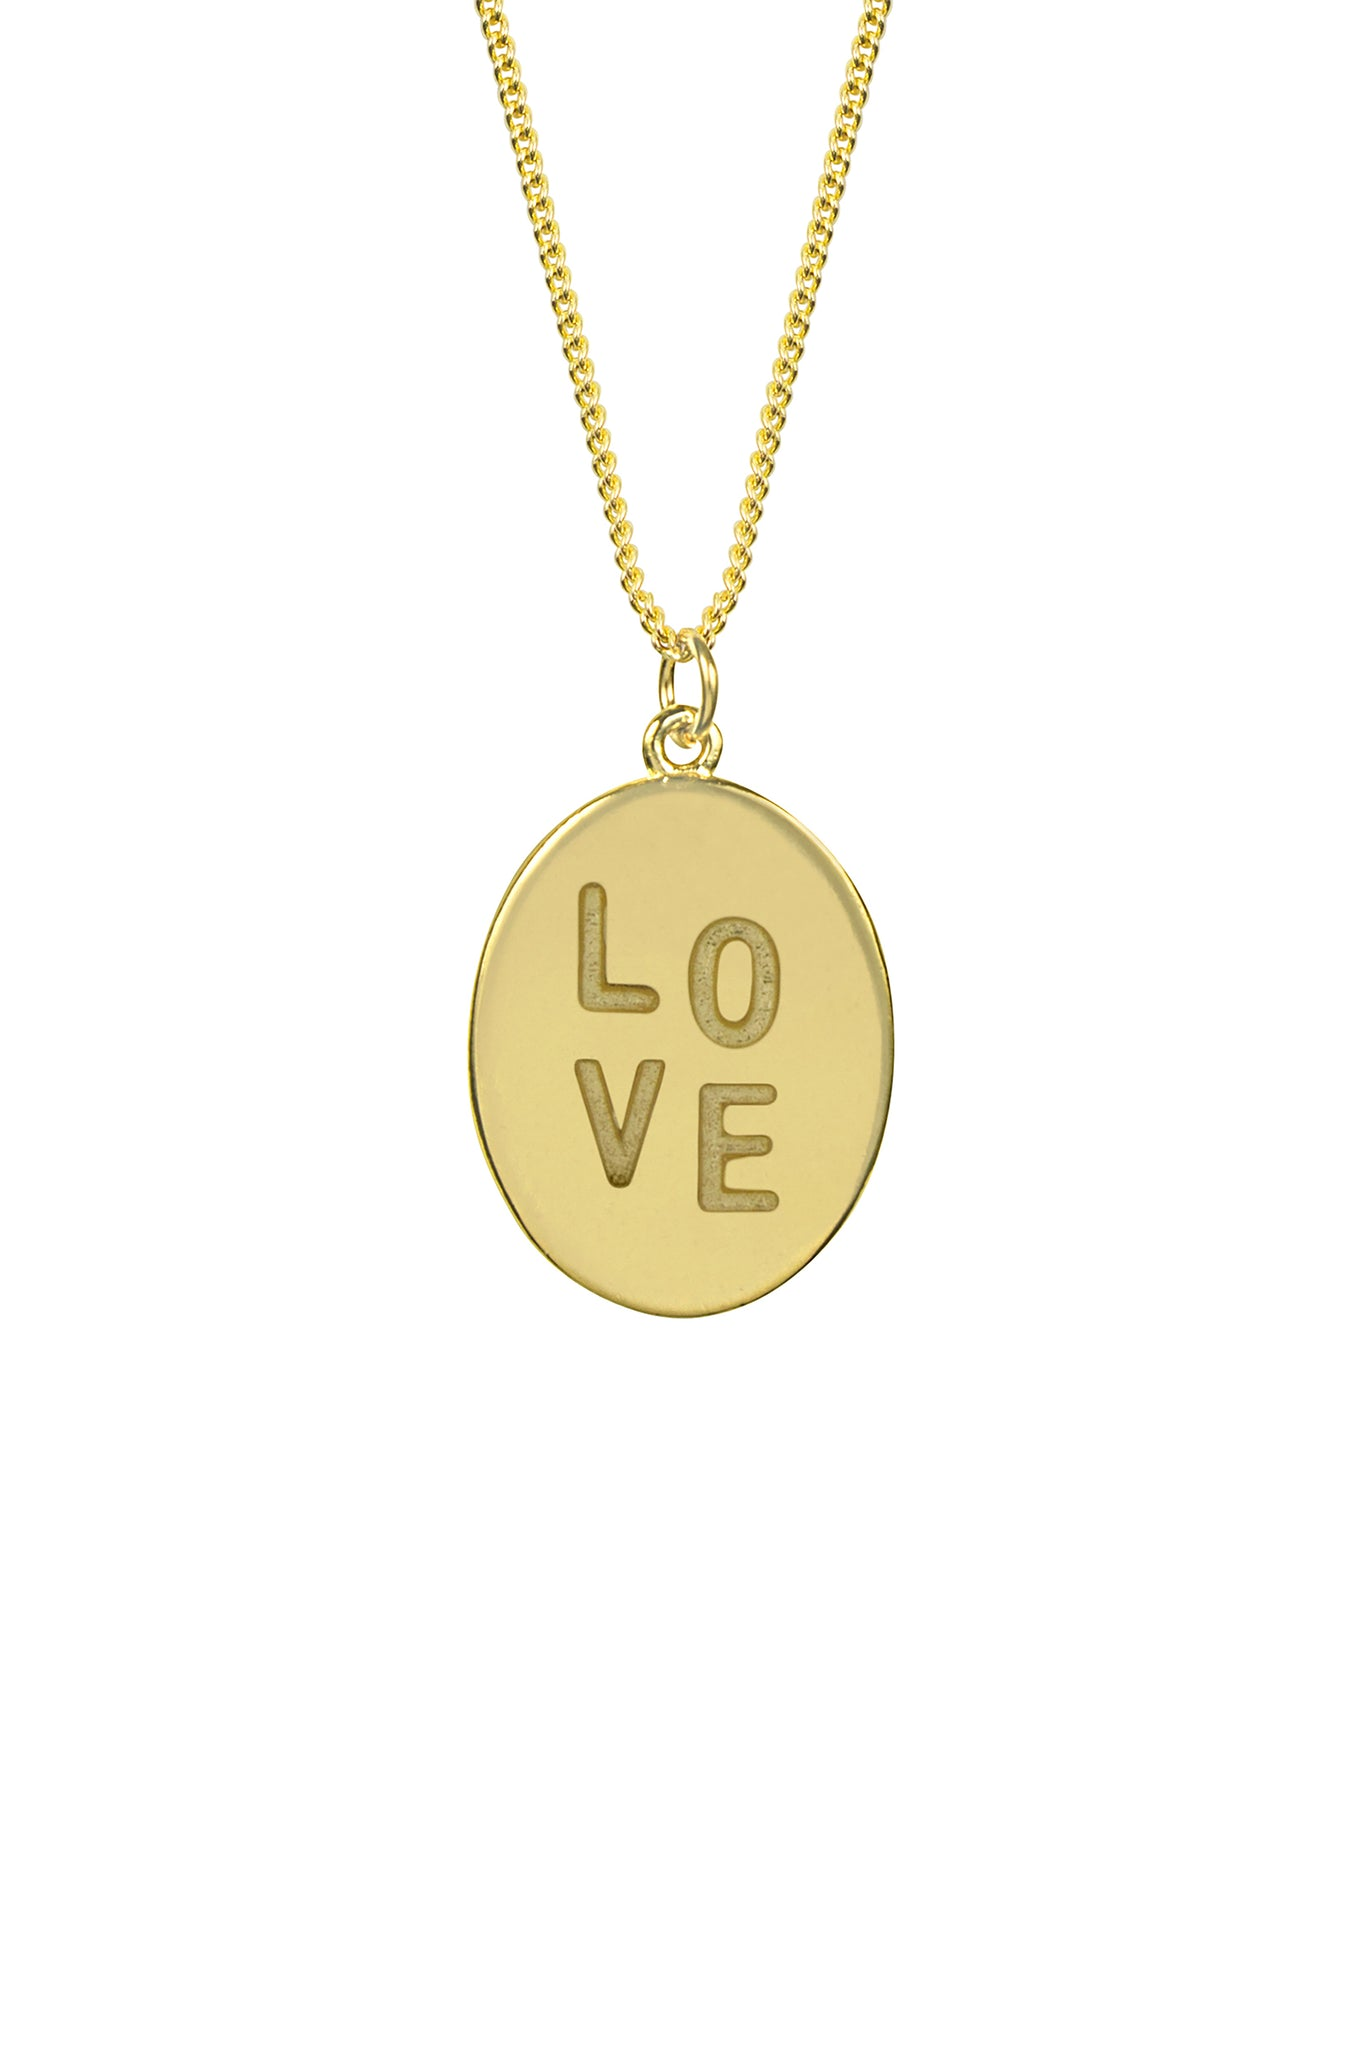 Love Charm Necklace, Katie Dean Jewelry